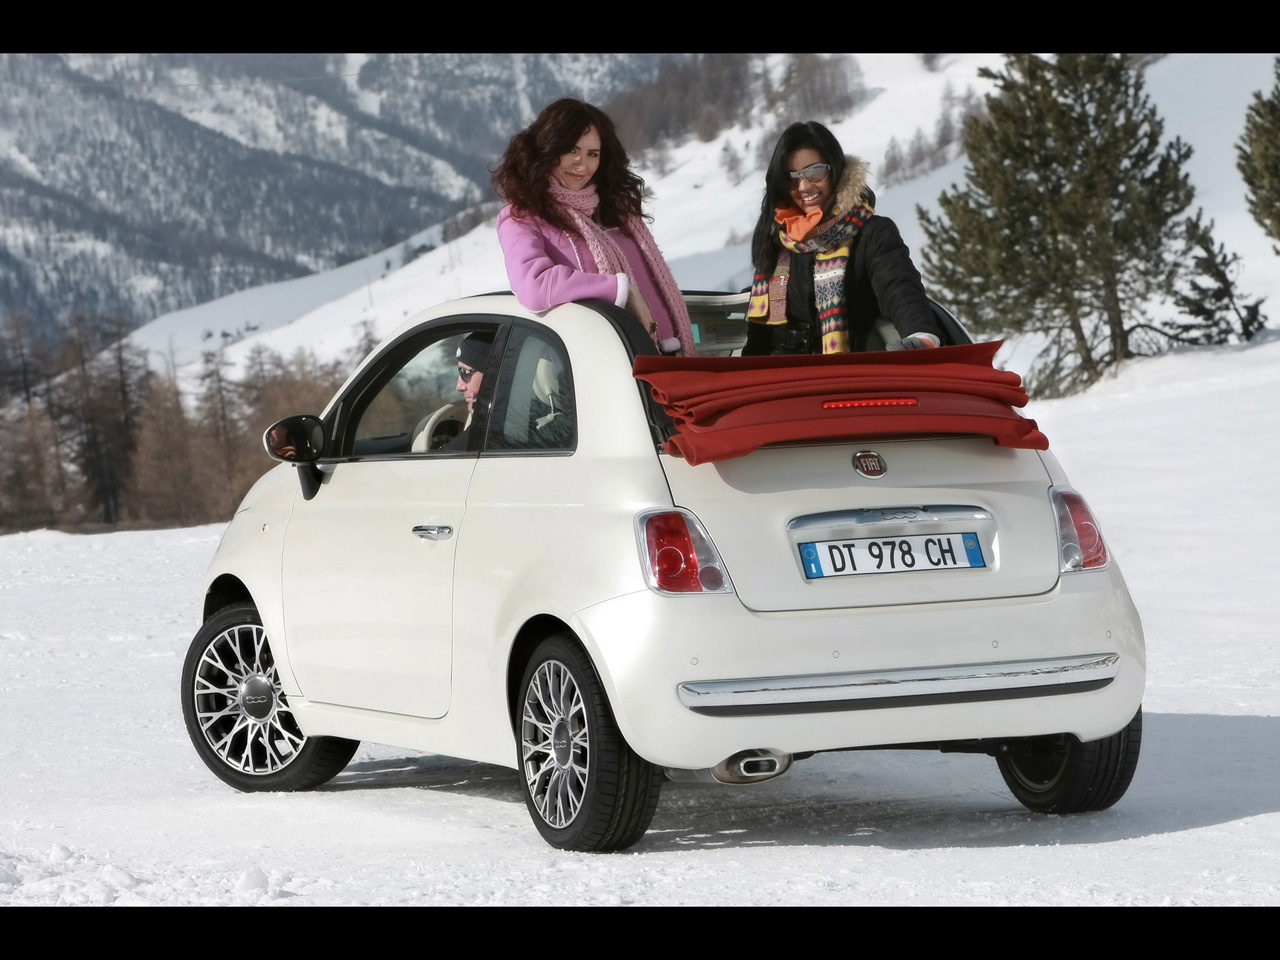 fiat 500c used for sale